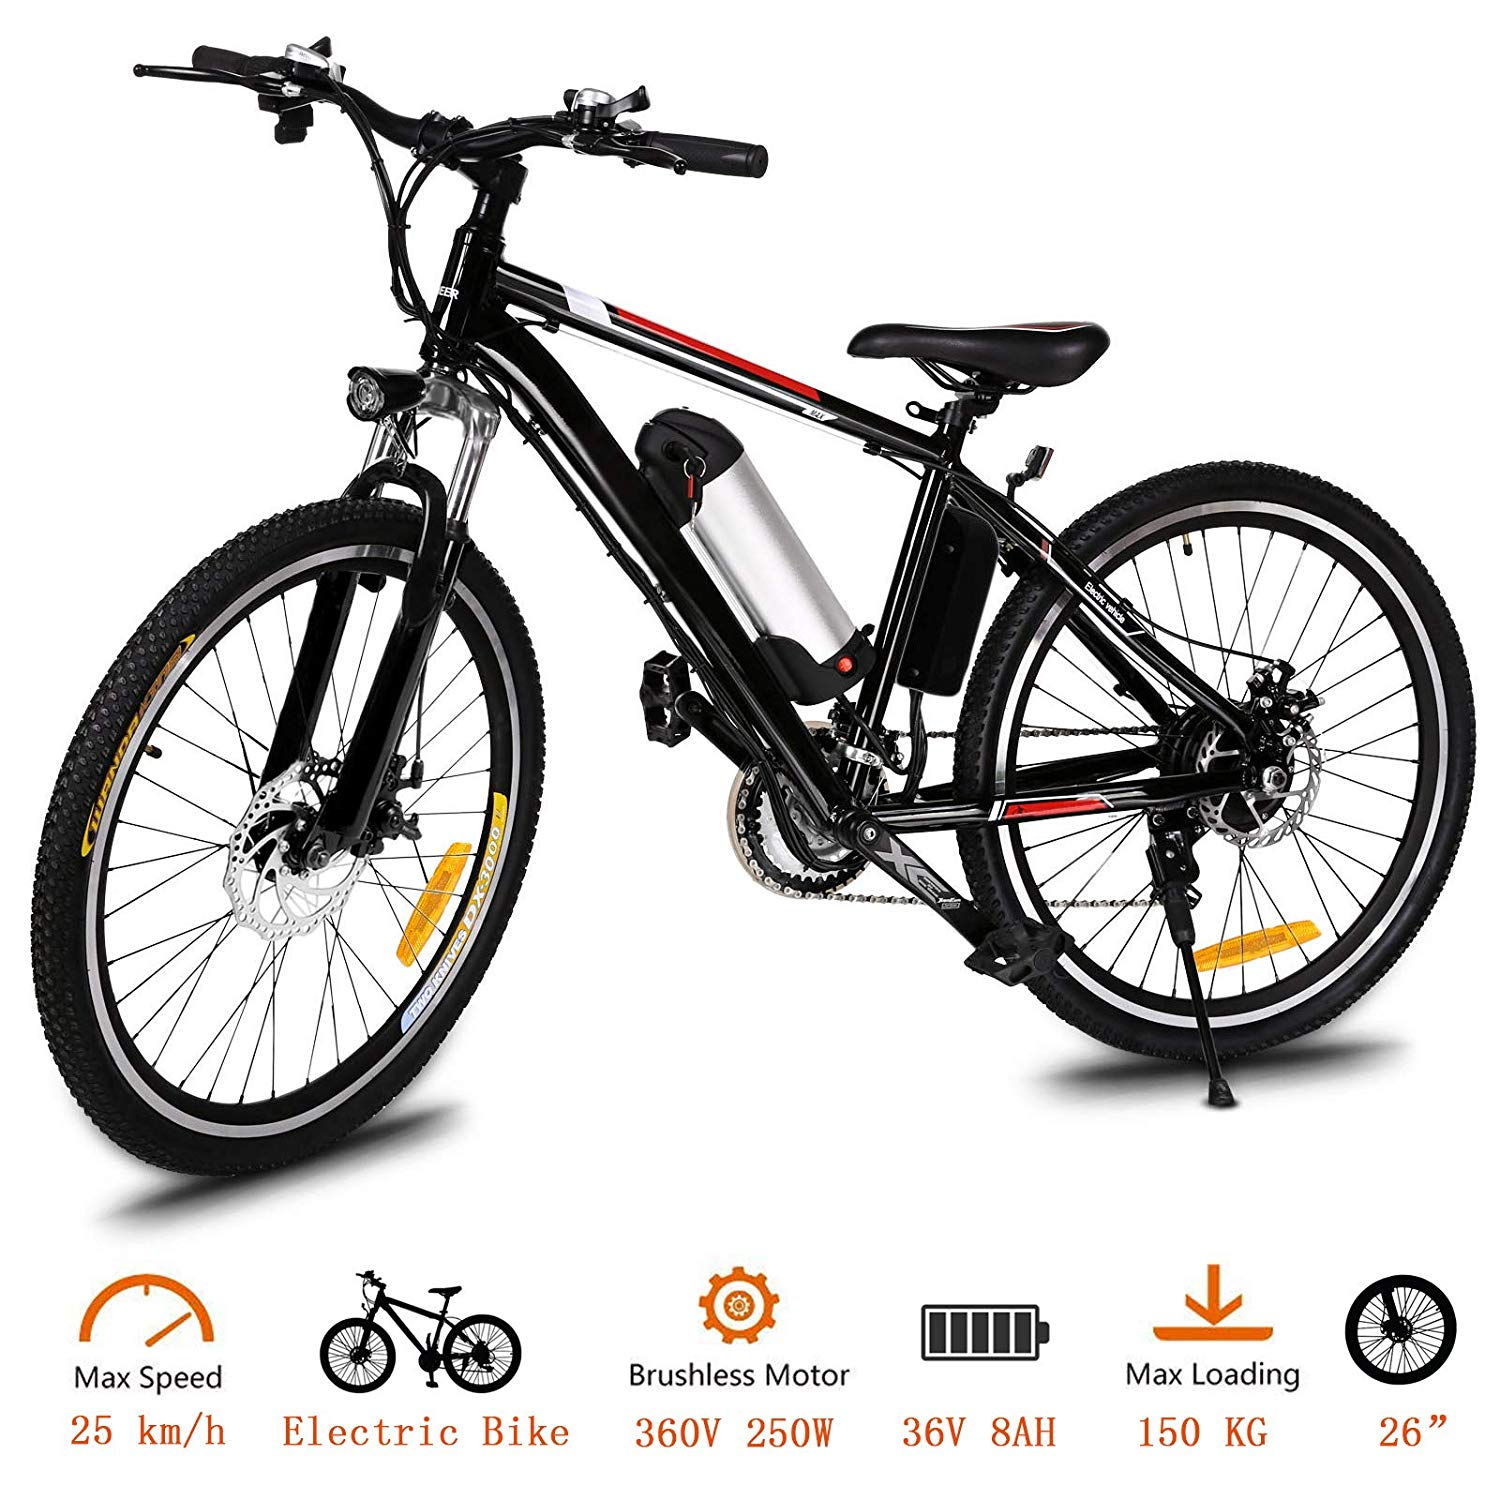 "ANCHEER Electric Bike 26"" 36V Bicycle Electric Power Mountain Bike For Adults Or Men Bicycle with Lithium-Ion Battery"